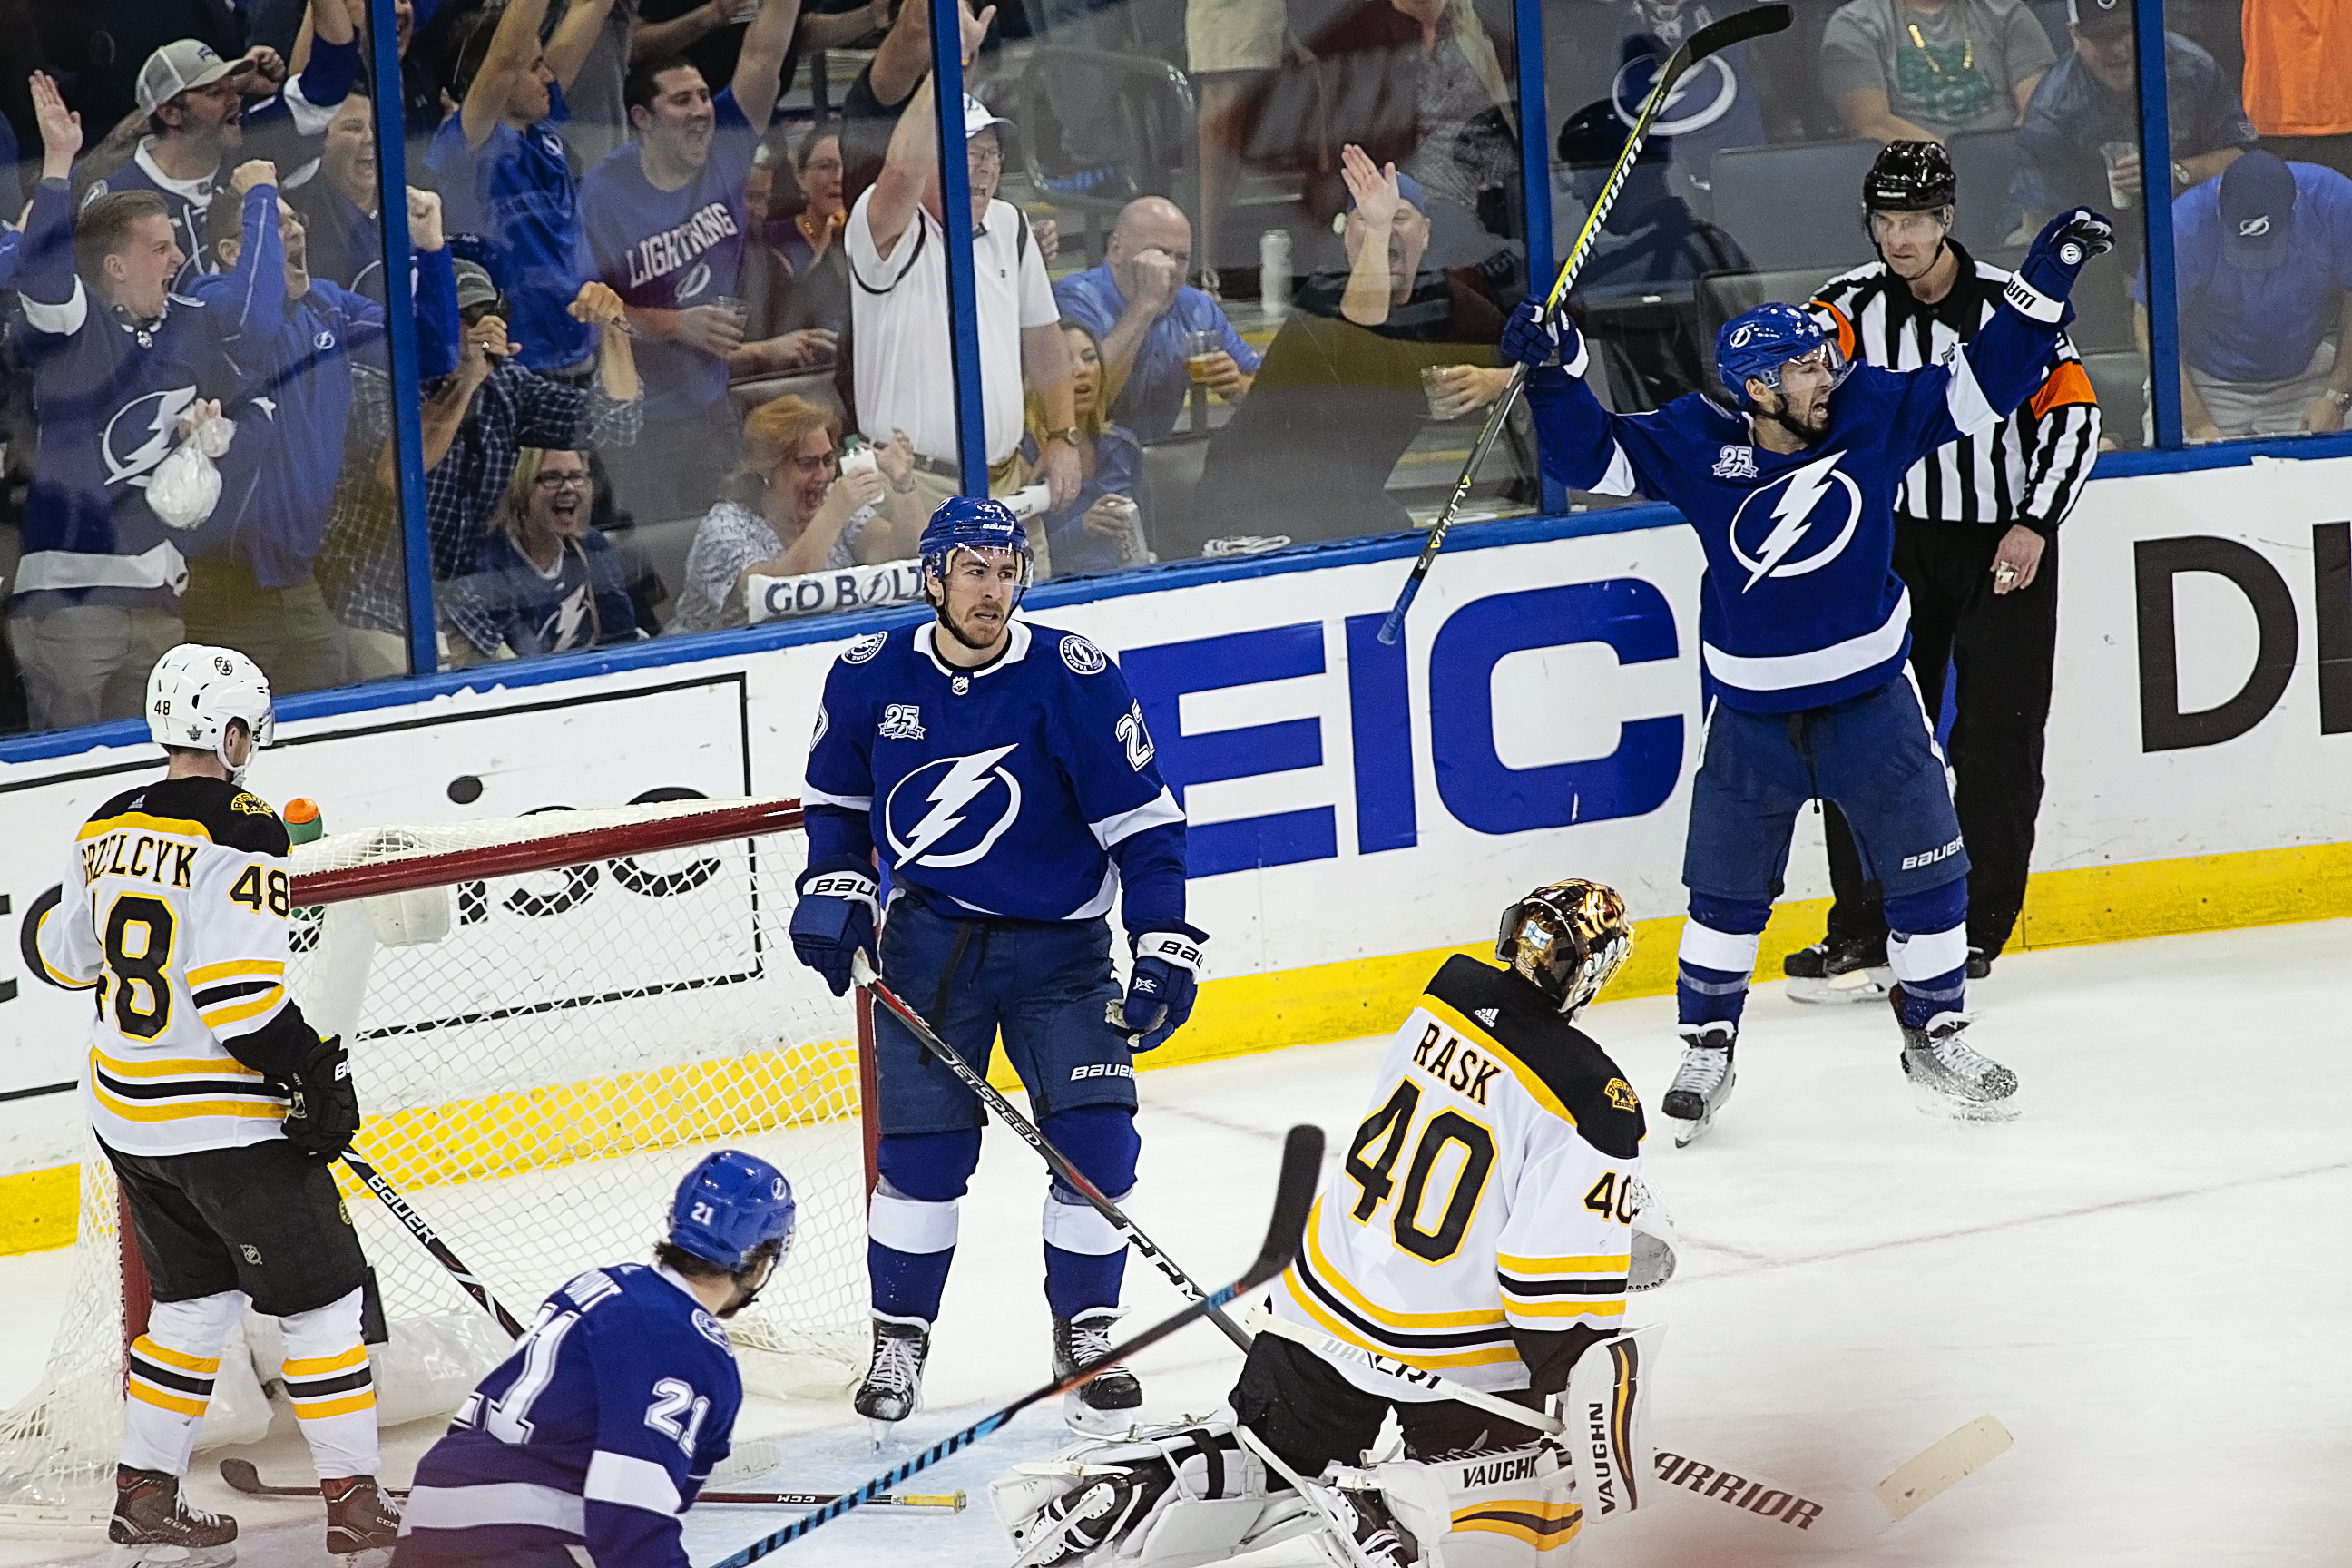 Tyler Johnson raises his arms after scoring./CARMEN MANDATO